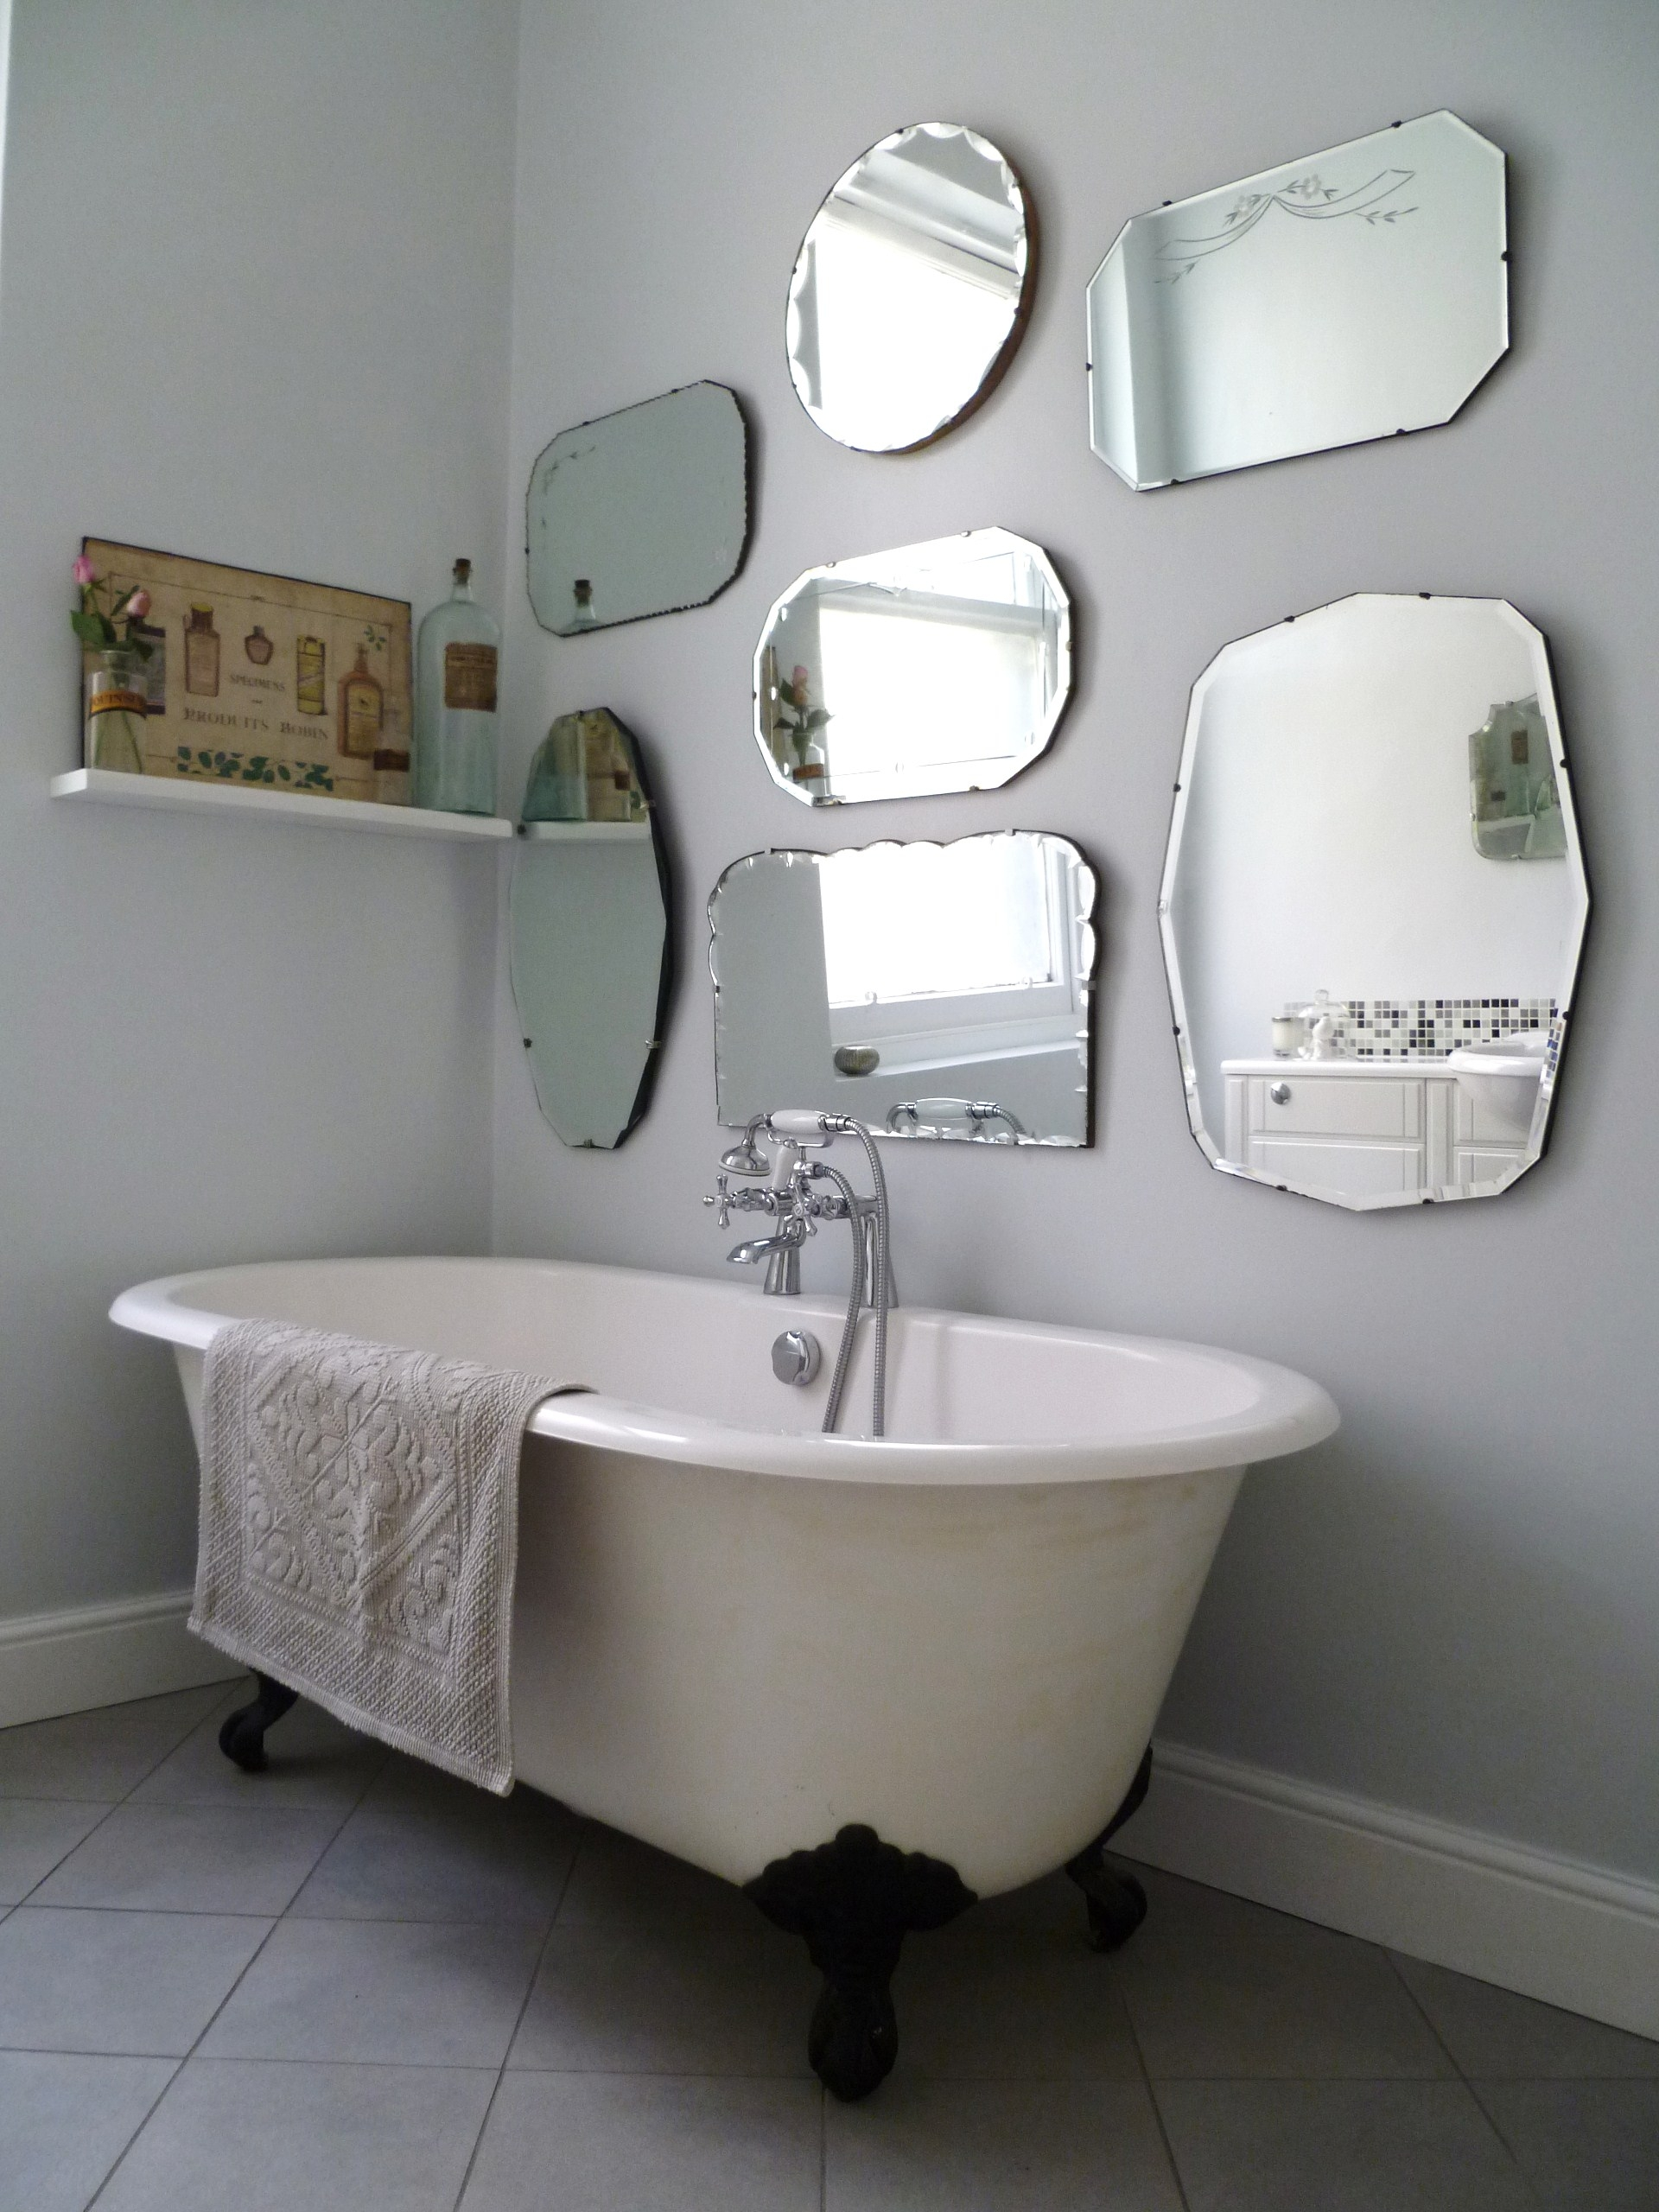 How To Hang A Display Of Vintage Mirrors Mirror Walls Grey And Pertaining To Antique Mirrors For Bathrooms (View 2 of 15)